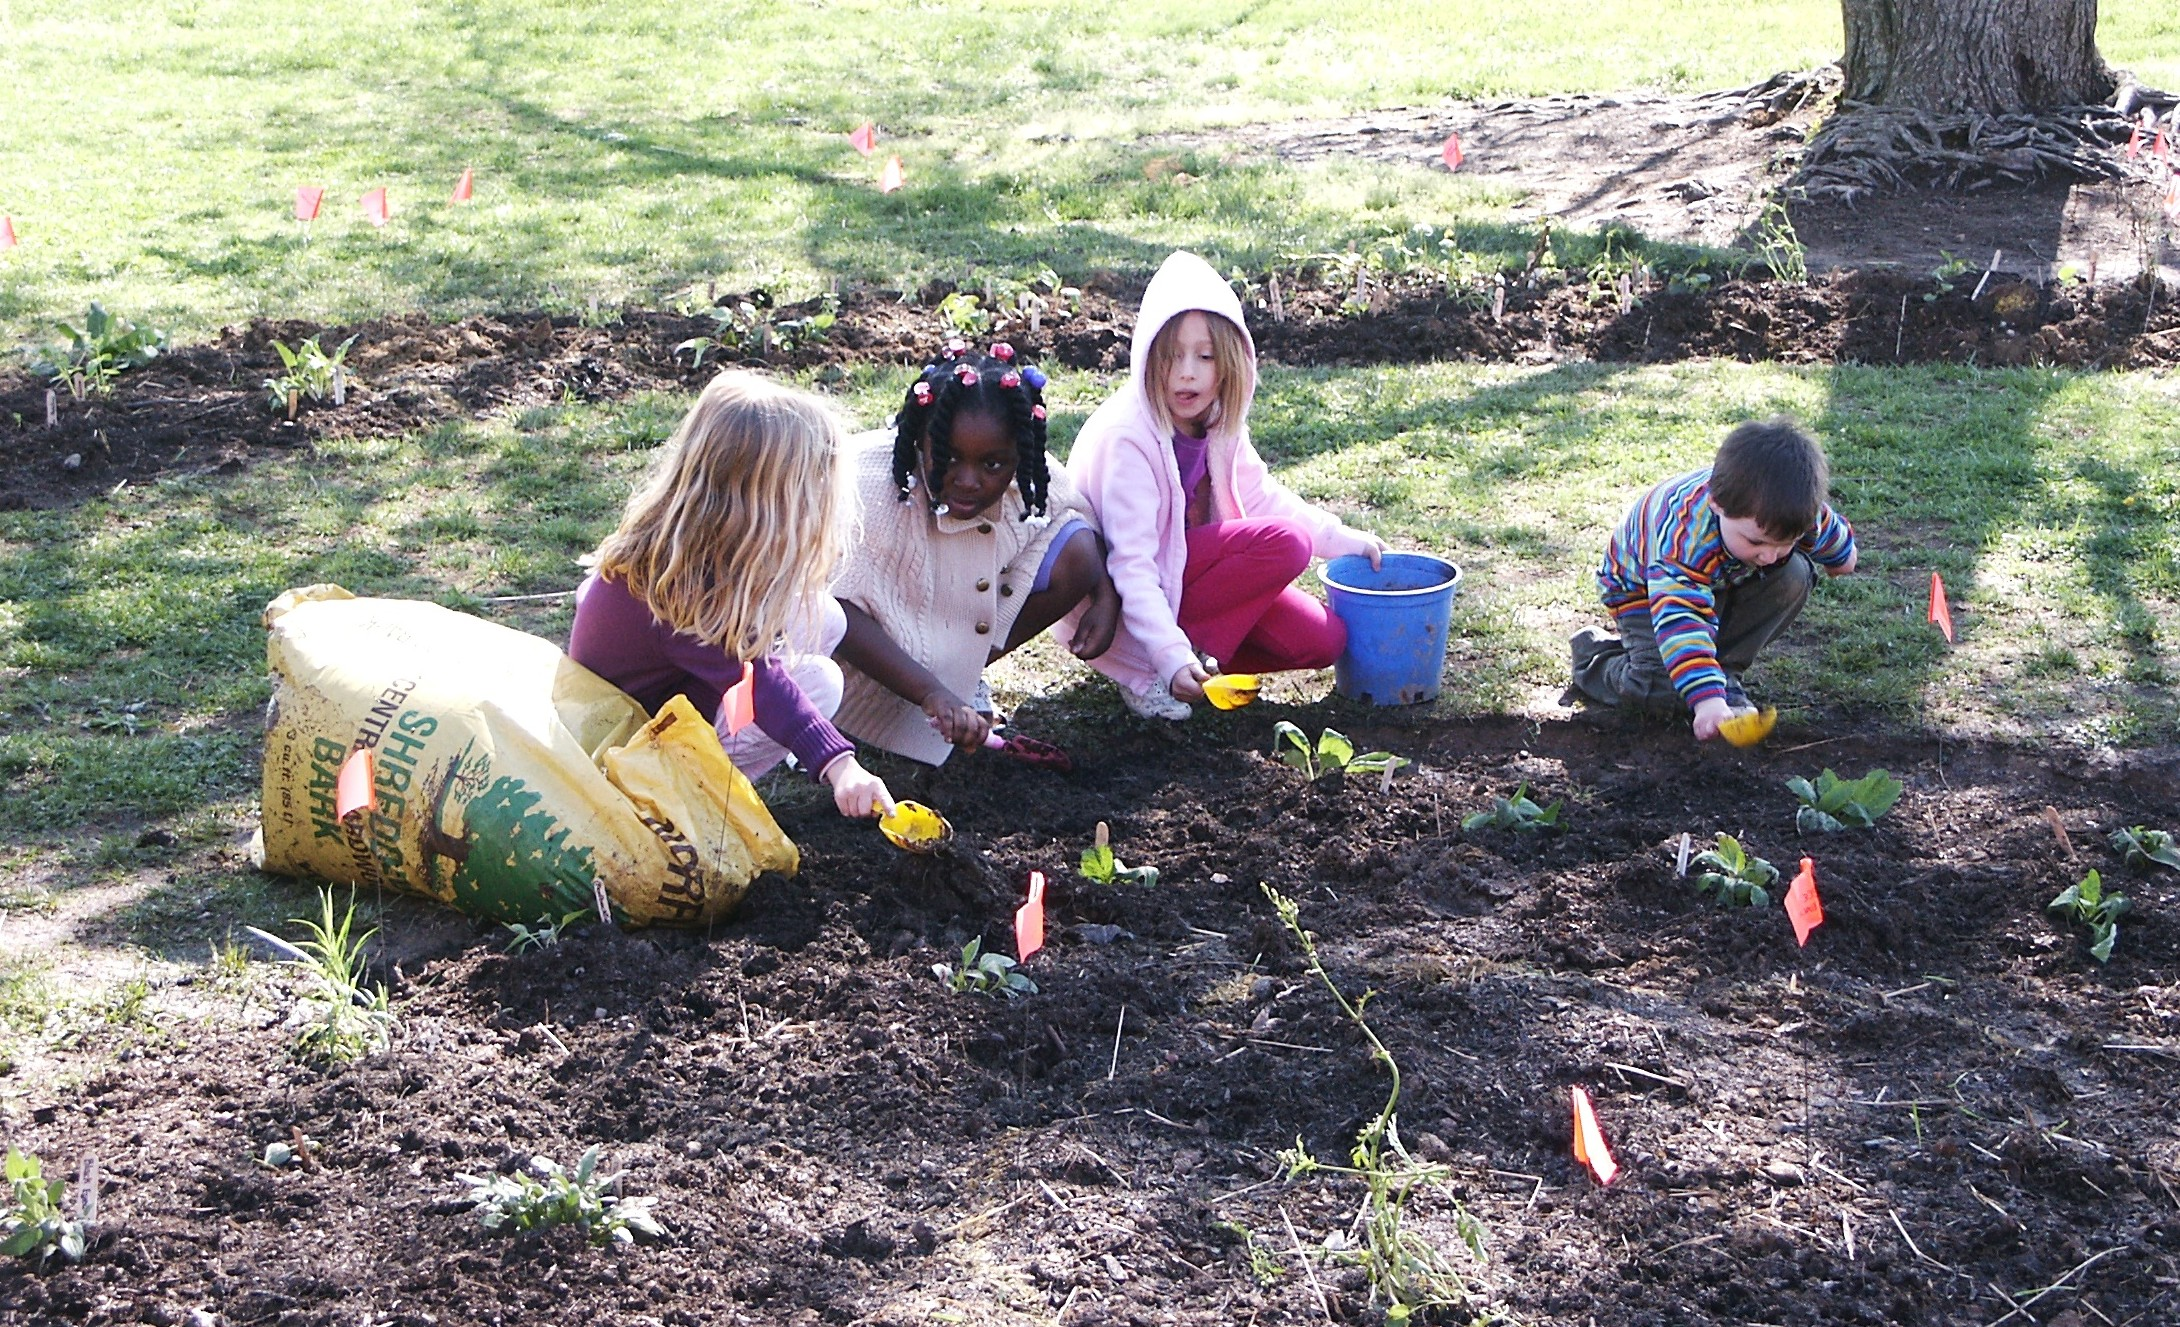 Kids planting pollinators together by USFWS Fisheries/CC BY